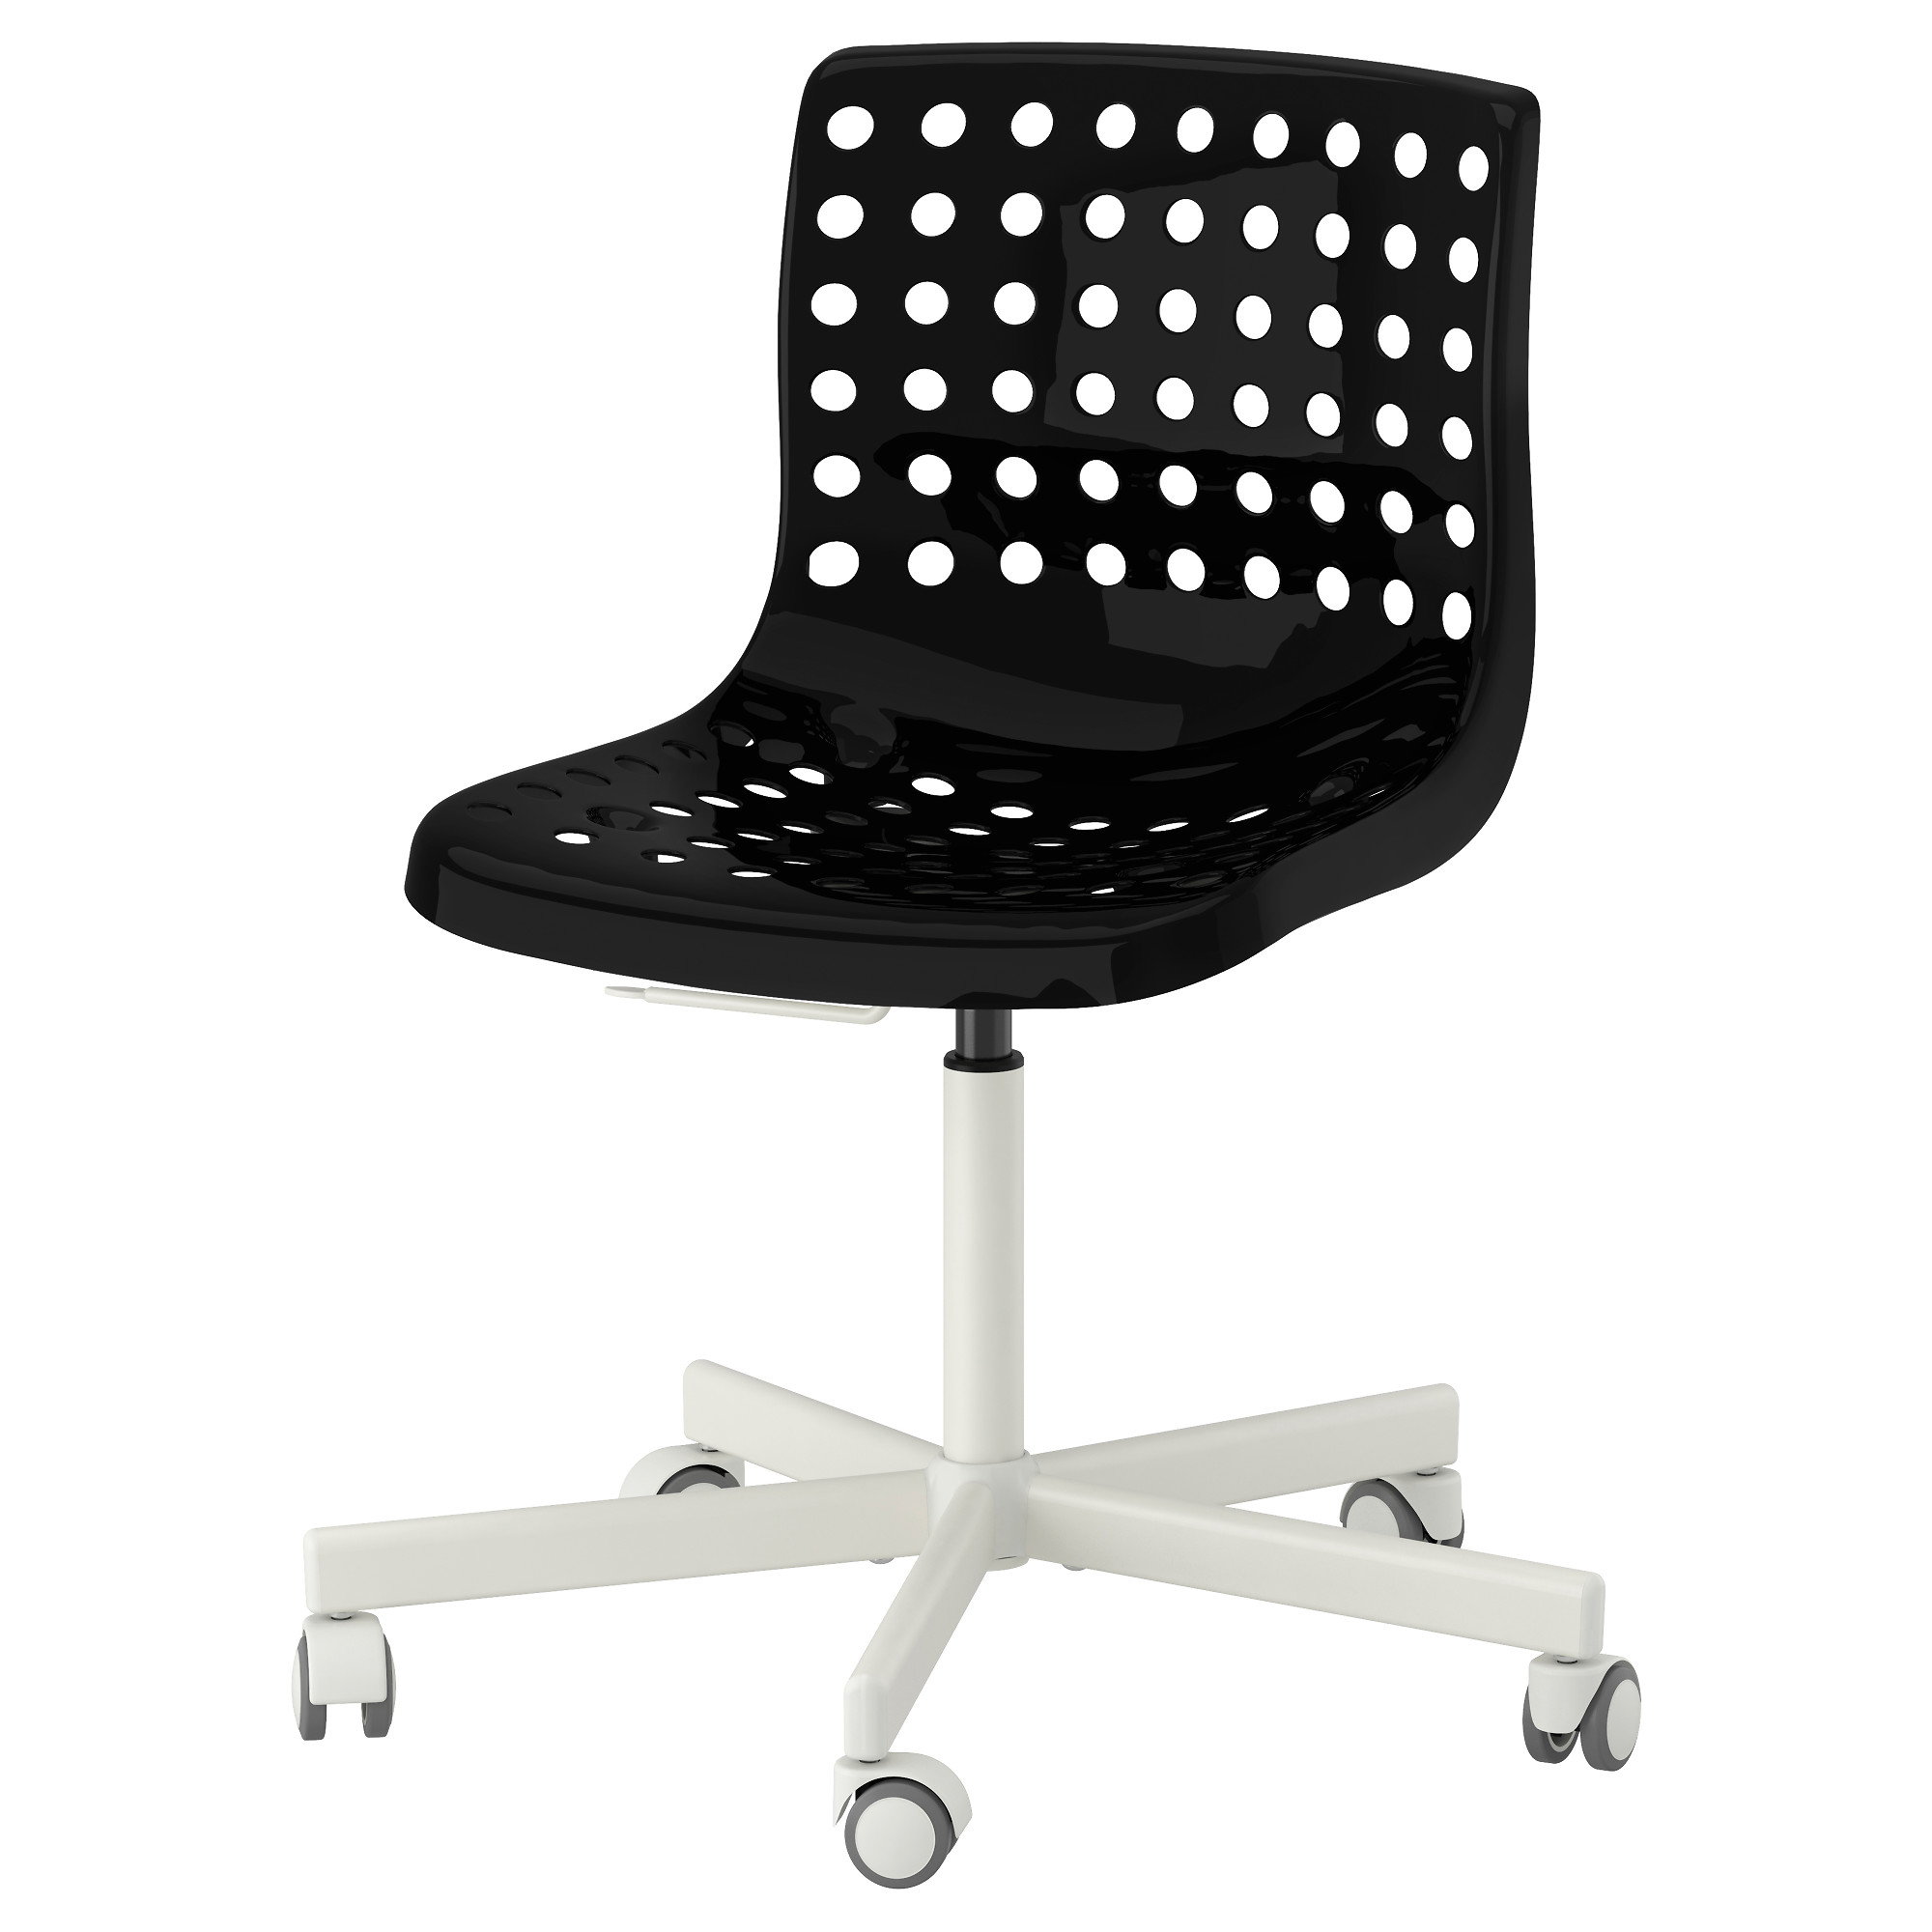 Black and white office chair - Black And White Office Chair 53